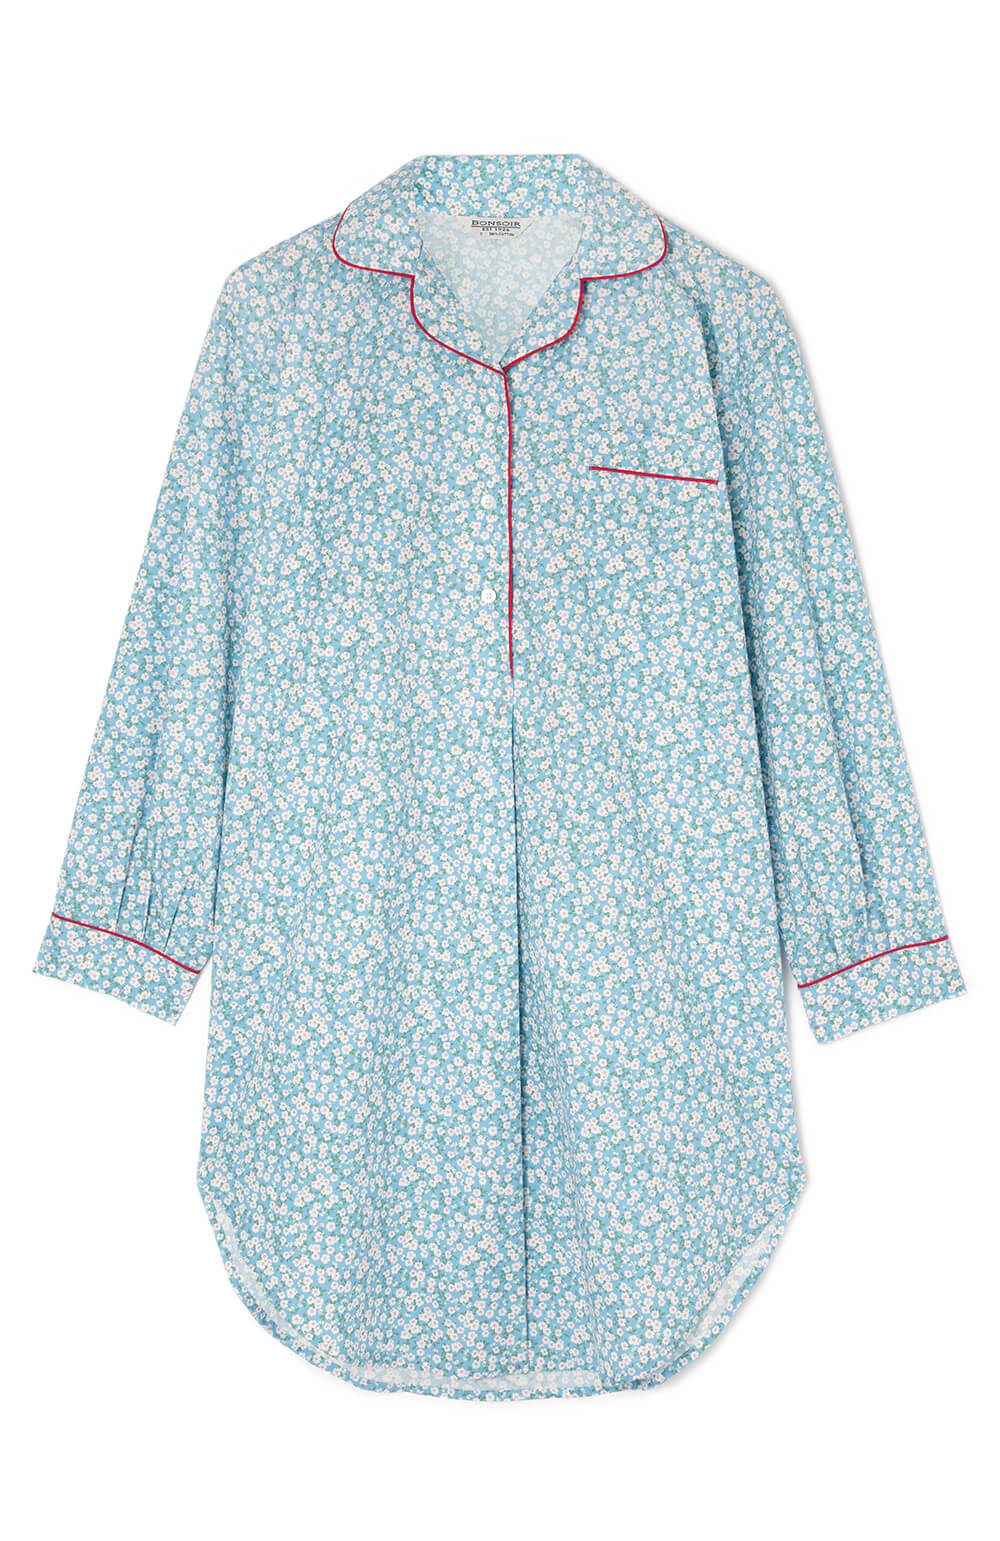 Maternity Long Sleeve Cotton Nightshirt (Mcsl) - Blue Floral